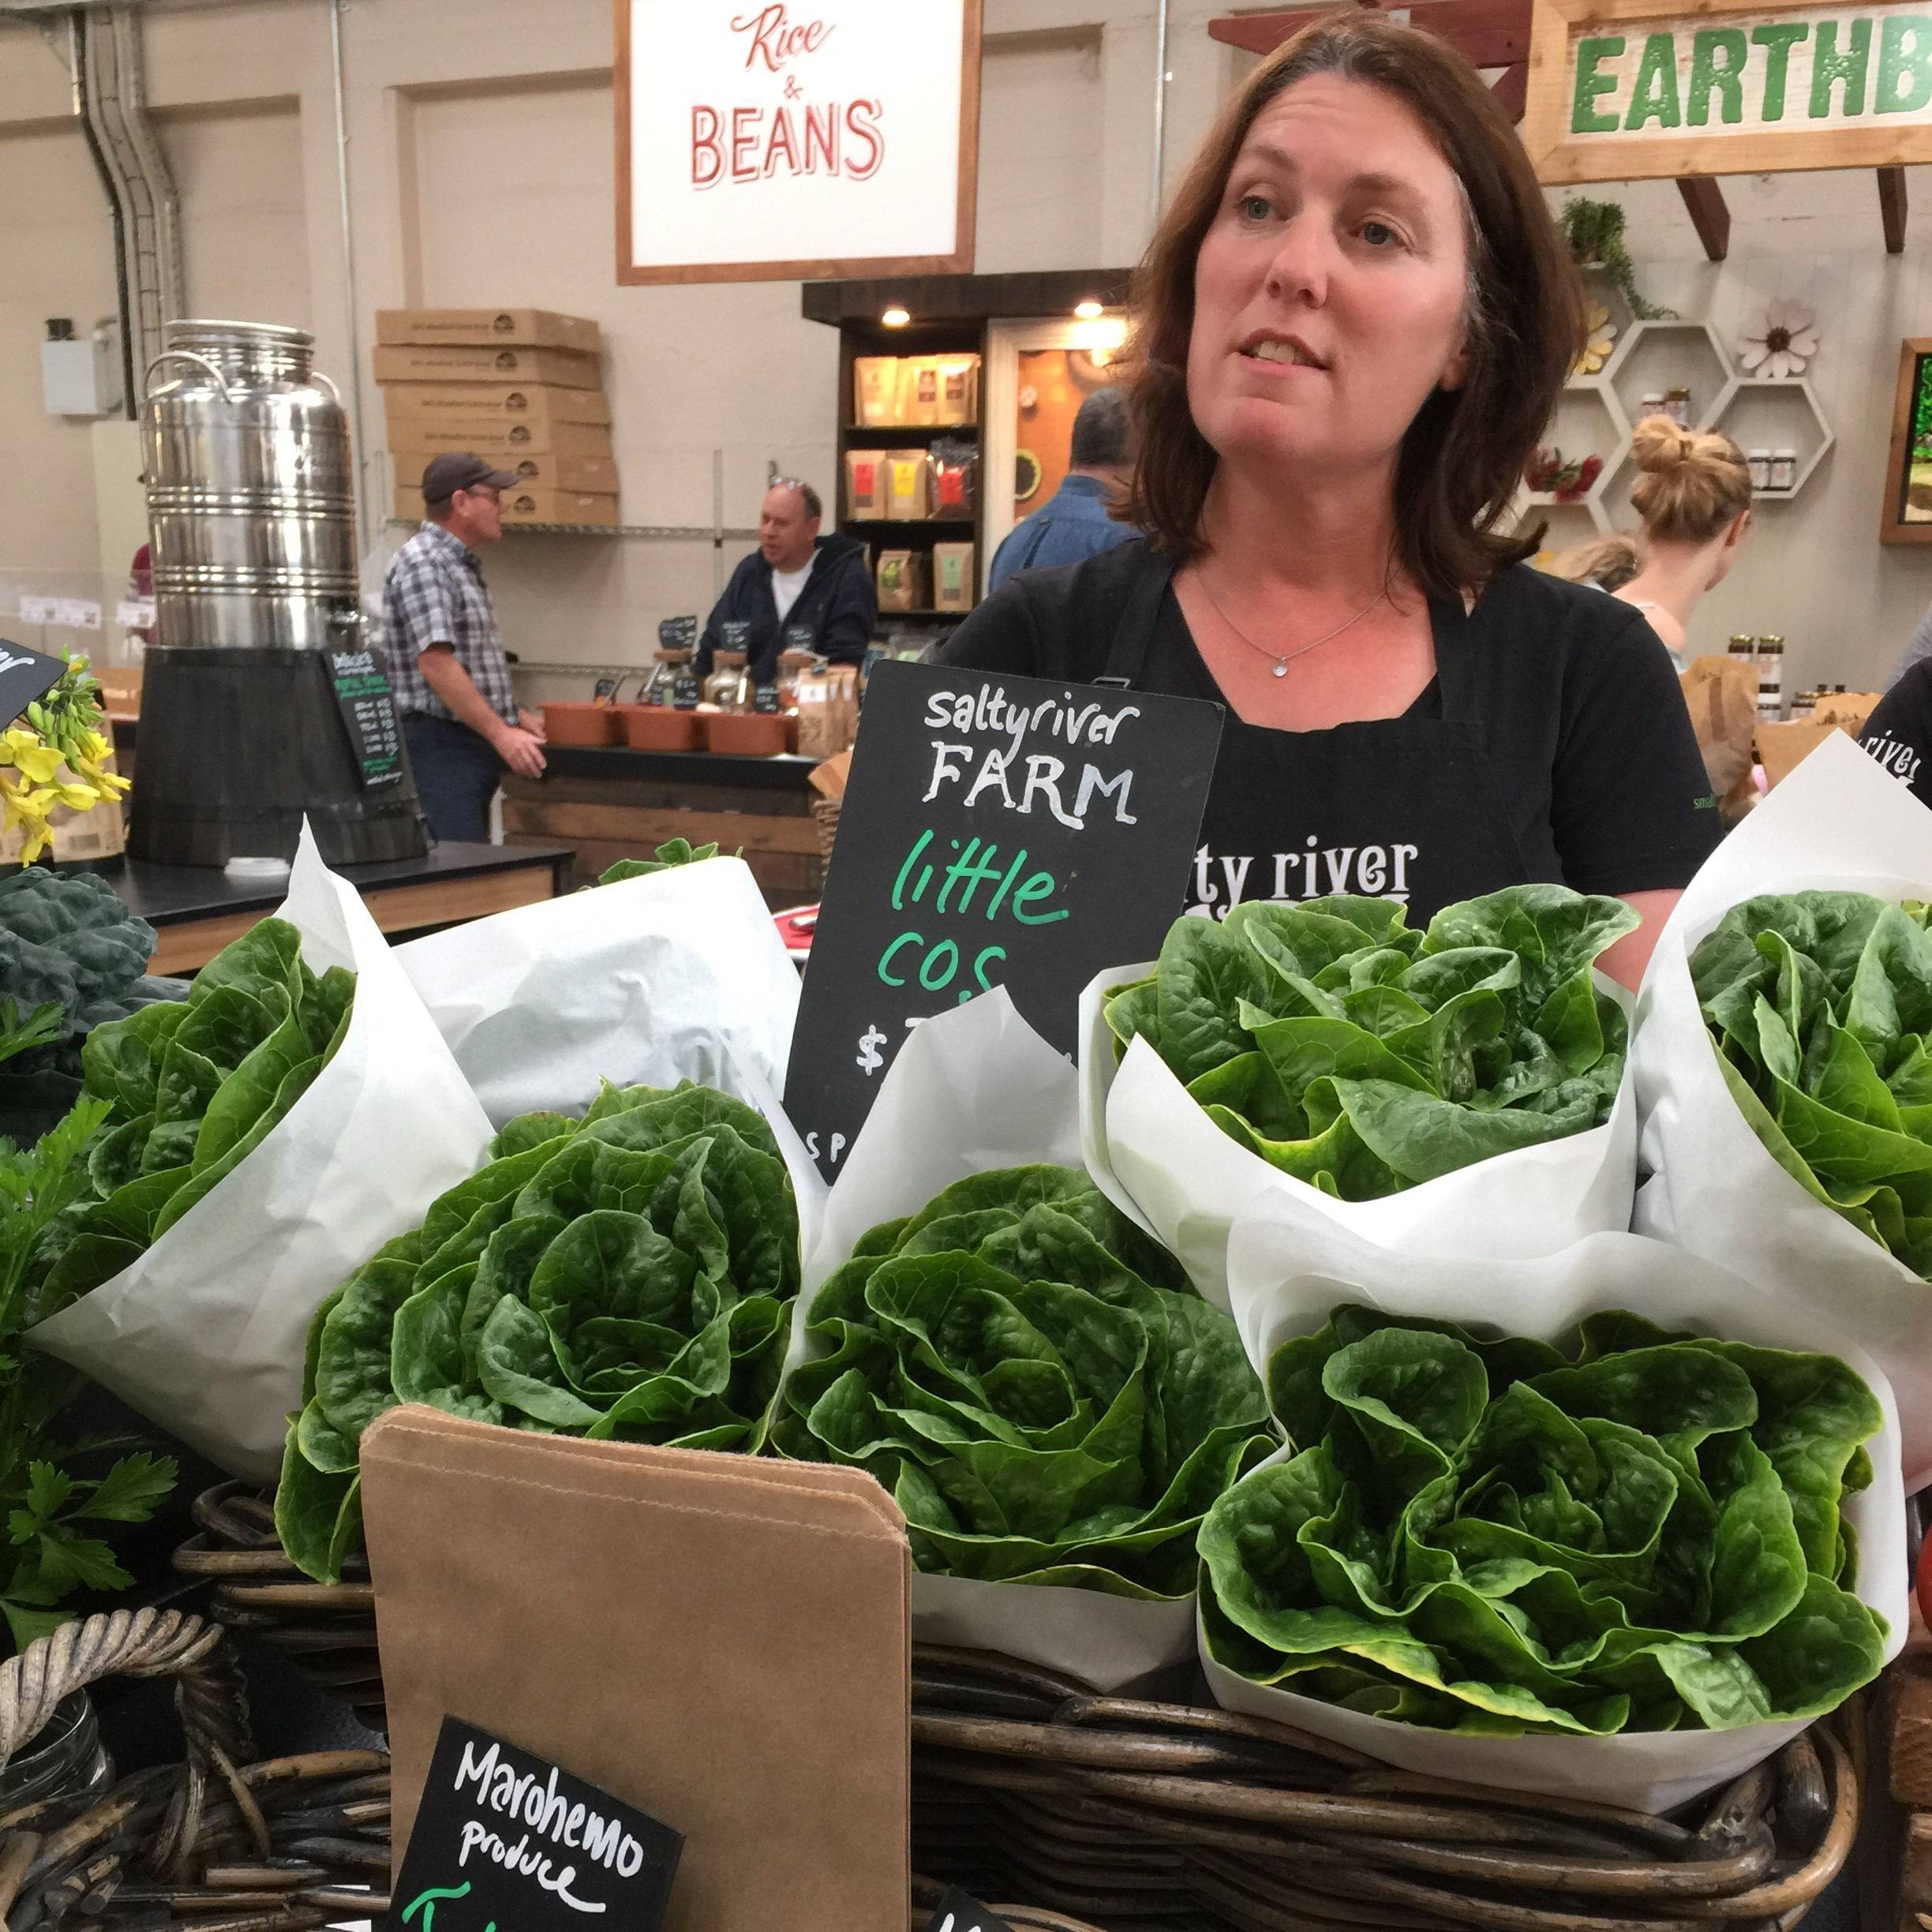 Beautiful salad greens and herbs from Salty River Farms